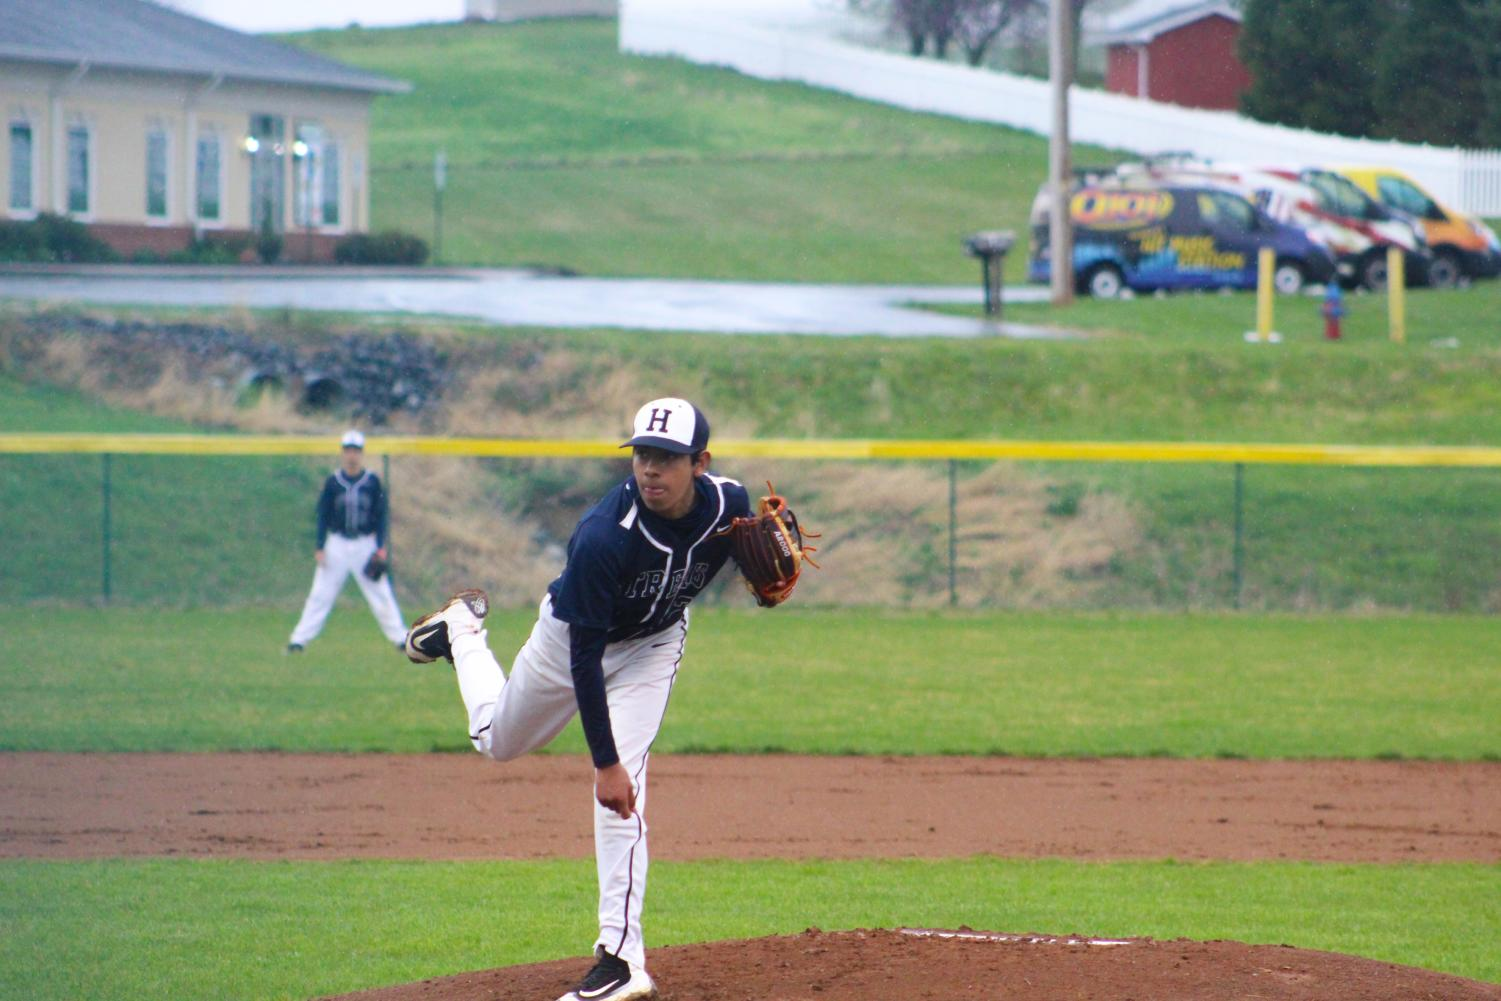 Sophomore+Diego+Gallegos+delivers+a+pitch+during+the+early+stages+of+the+game.